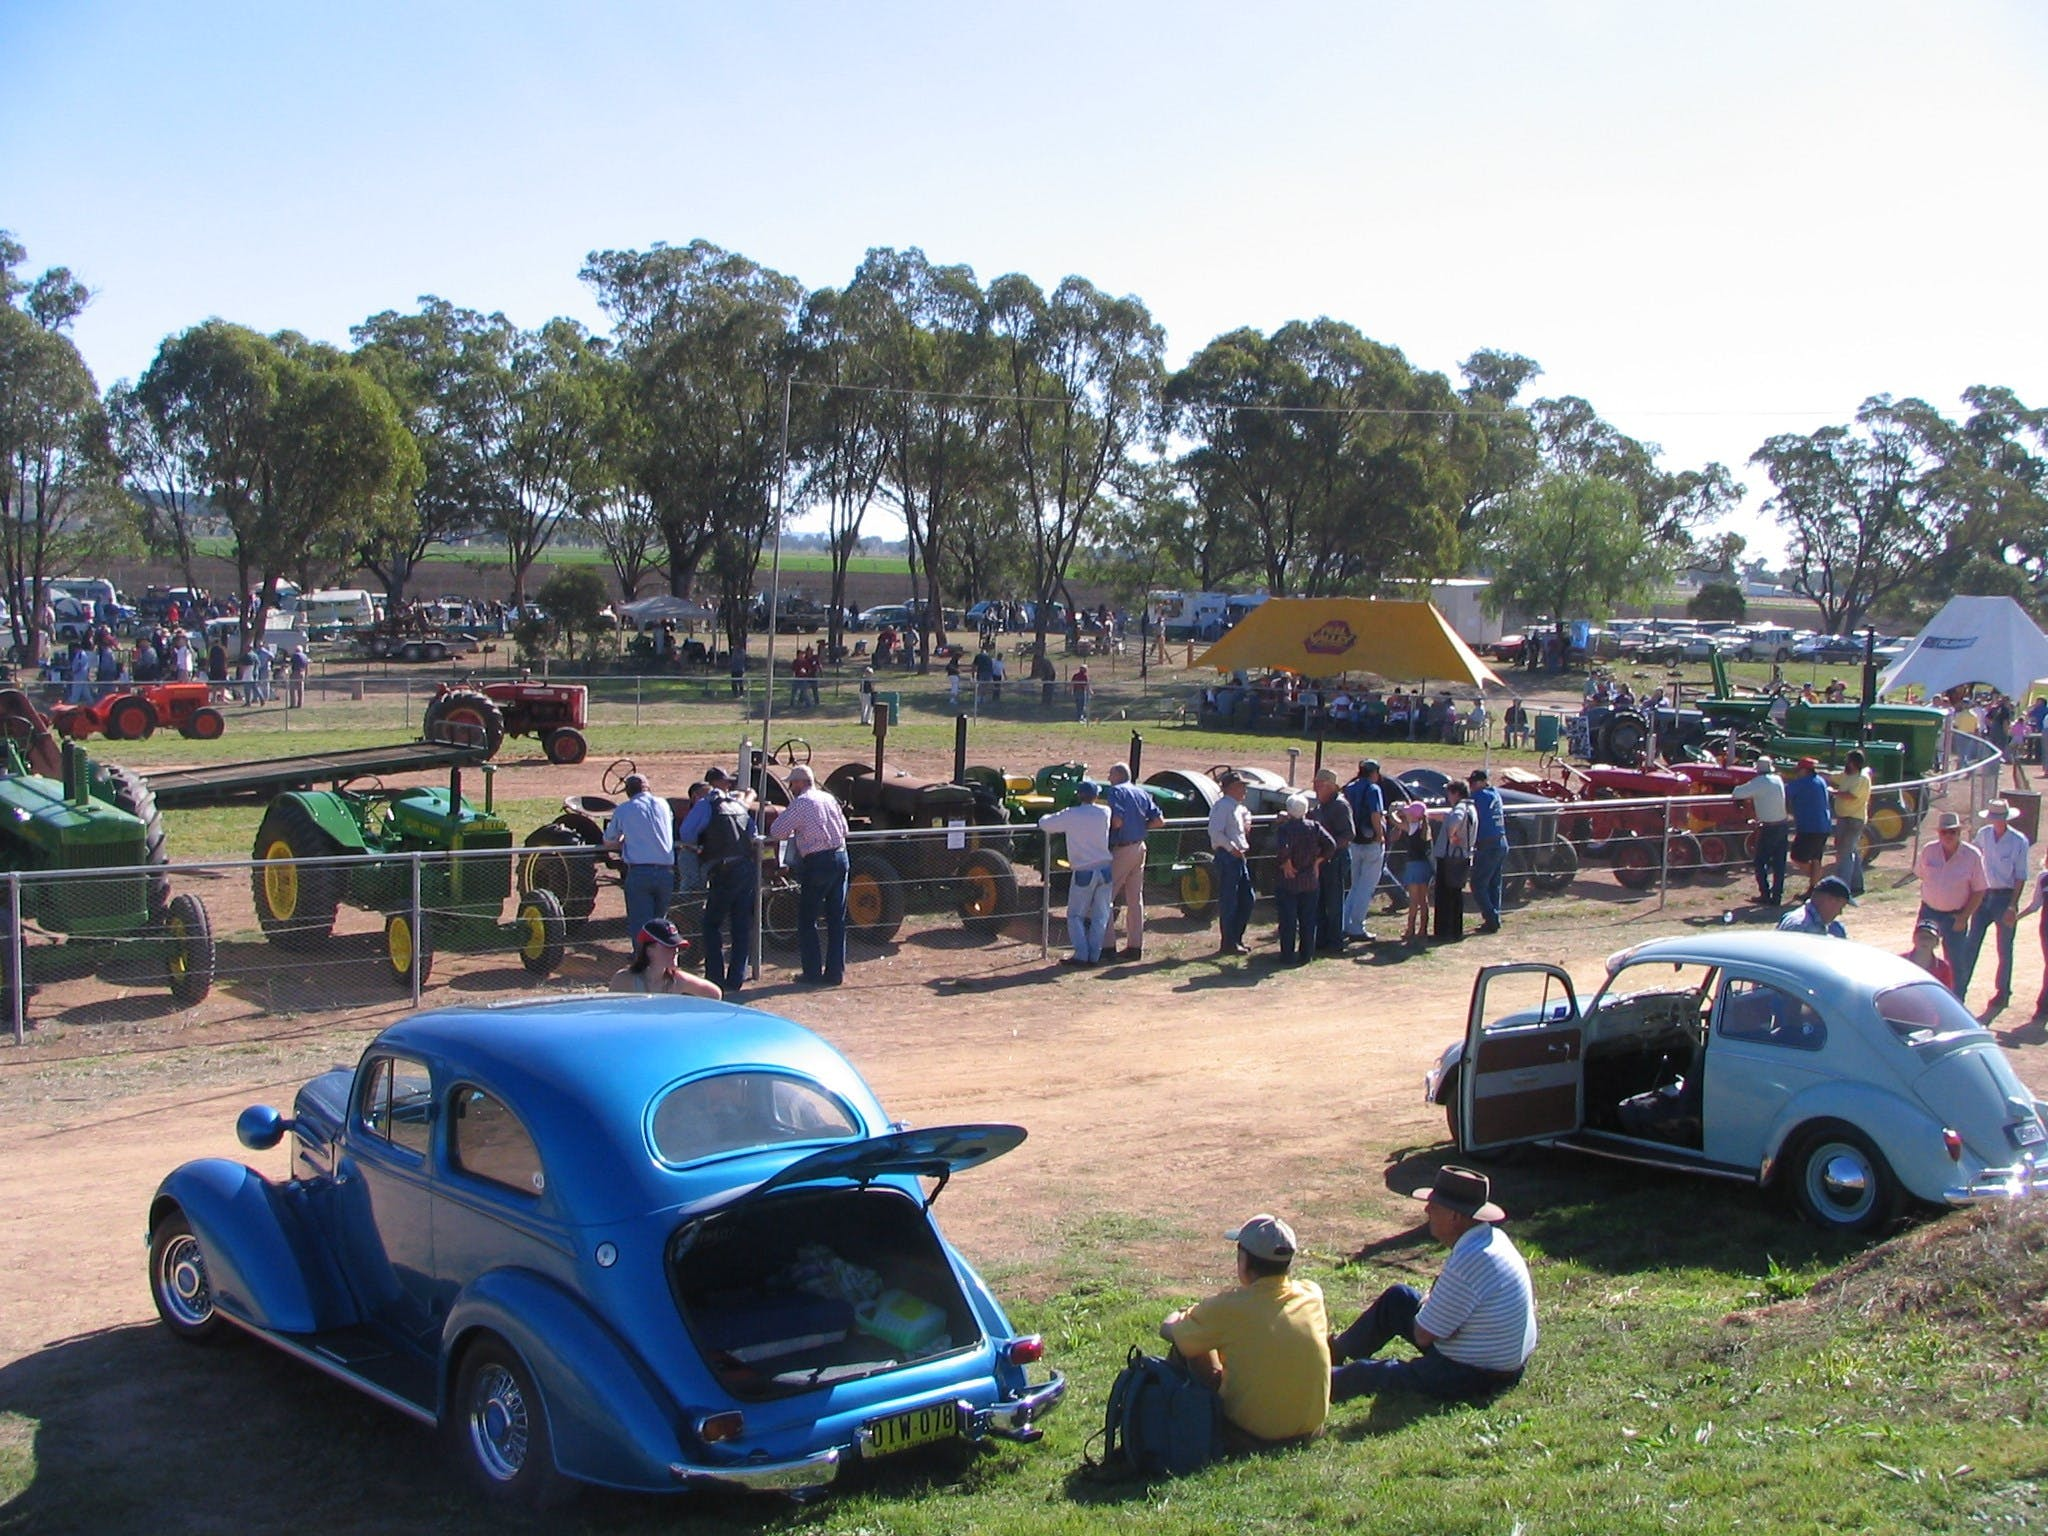 Quirindi Rural Heritage Village - Vintage Machinery and Miniature Railway Rally and Swap Meet - Tourism Bookings